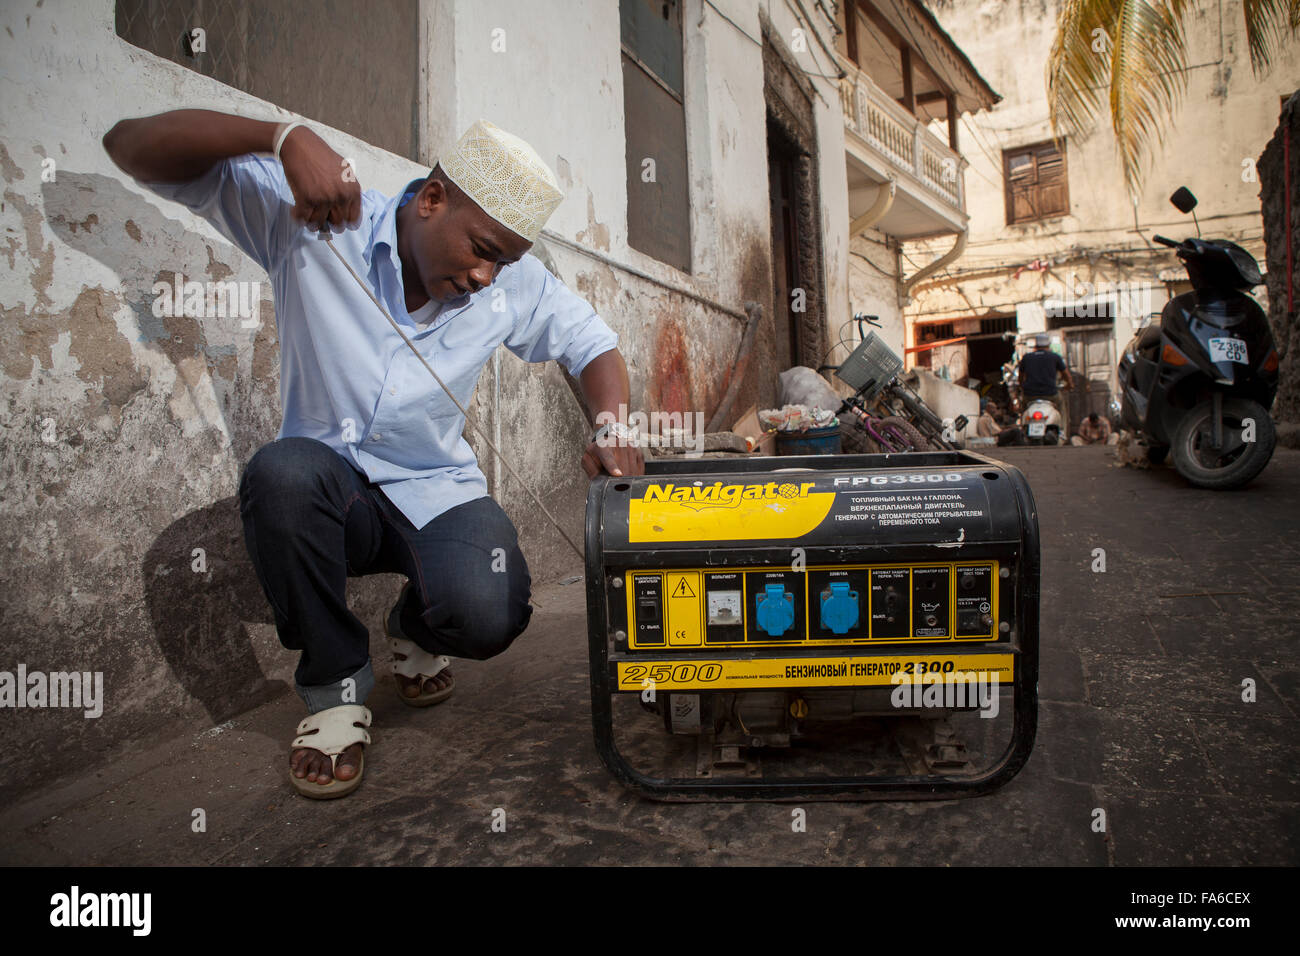 Restaurant owner Hamisi Saleh Lukmaan starts up a generator during a power blackout in Stonetown, Zanzibar, E. Africa. - Stock Image